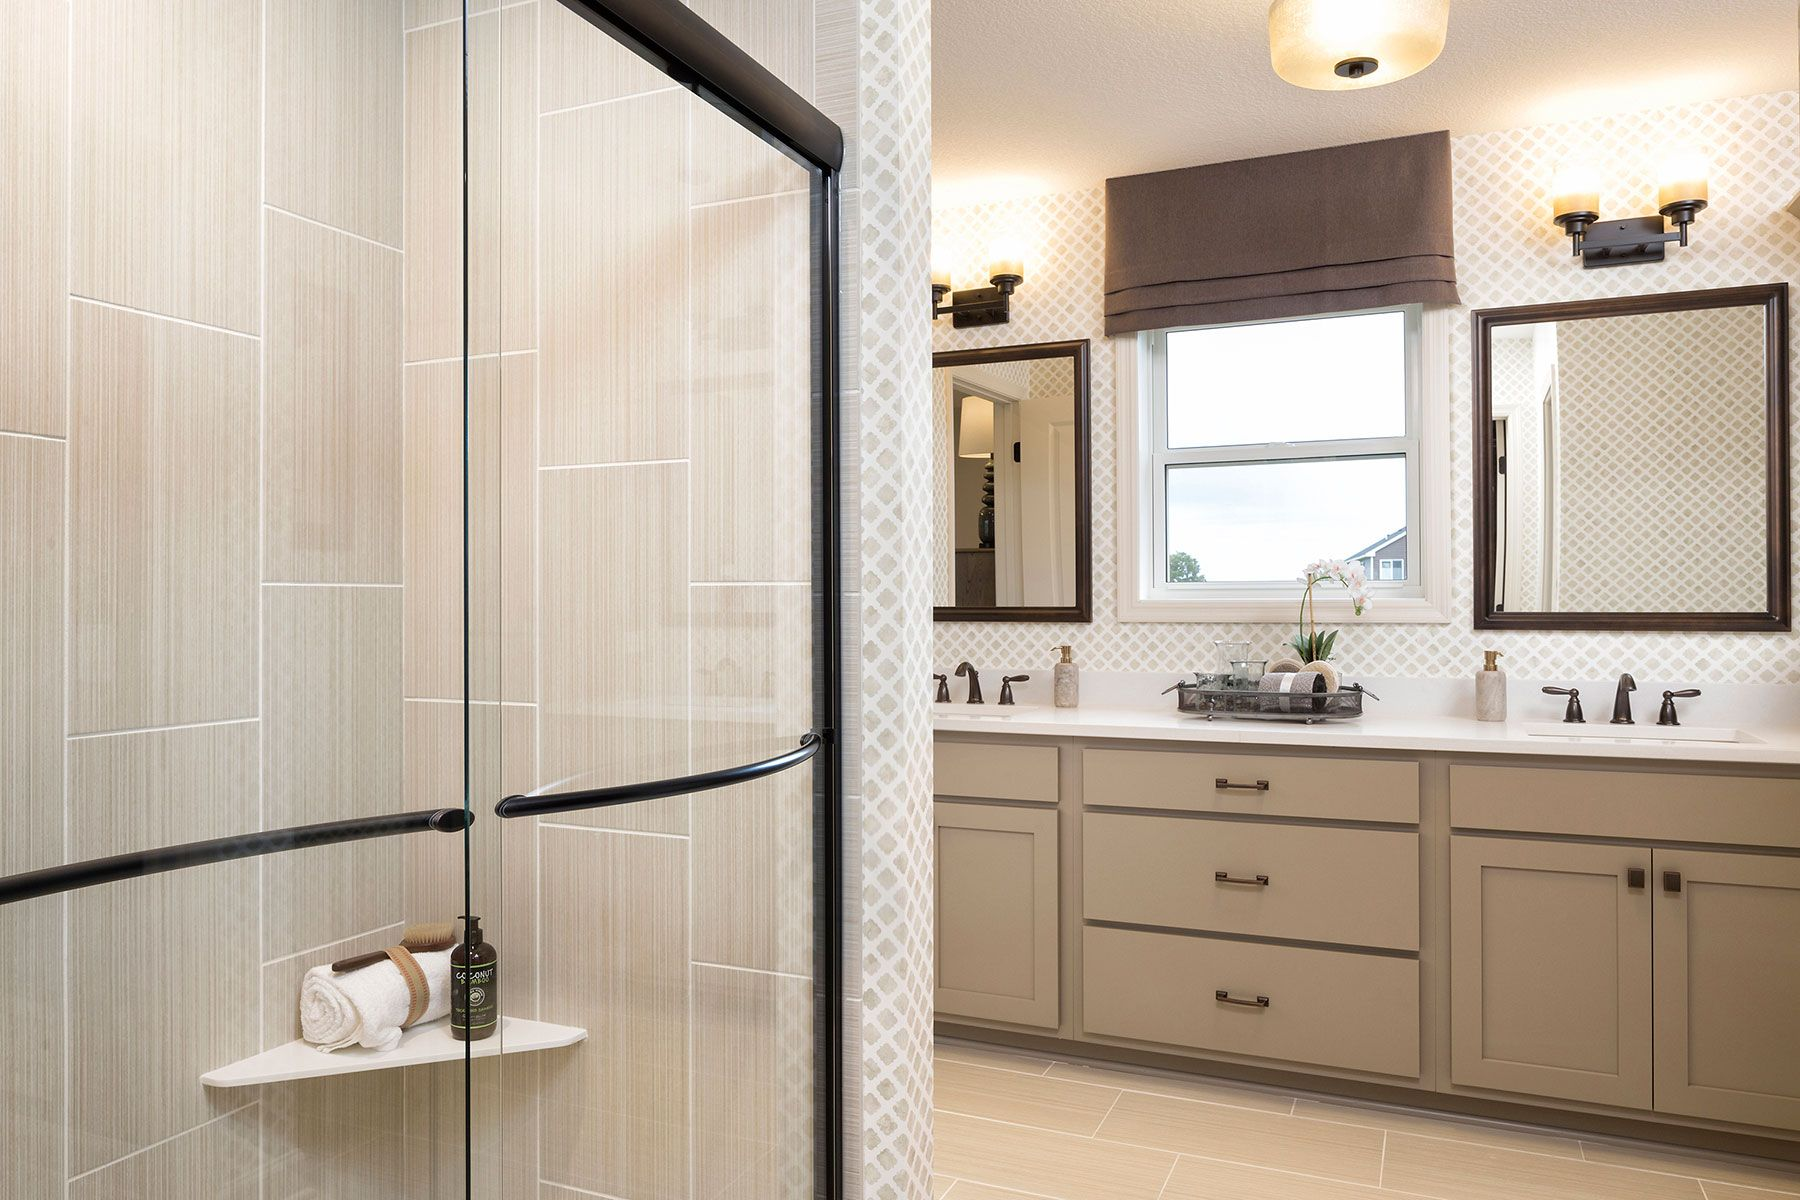 Bathroom featured in the Taylor By M/I Homes in Minneapolis-St. Paul, MN